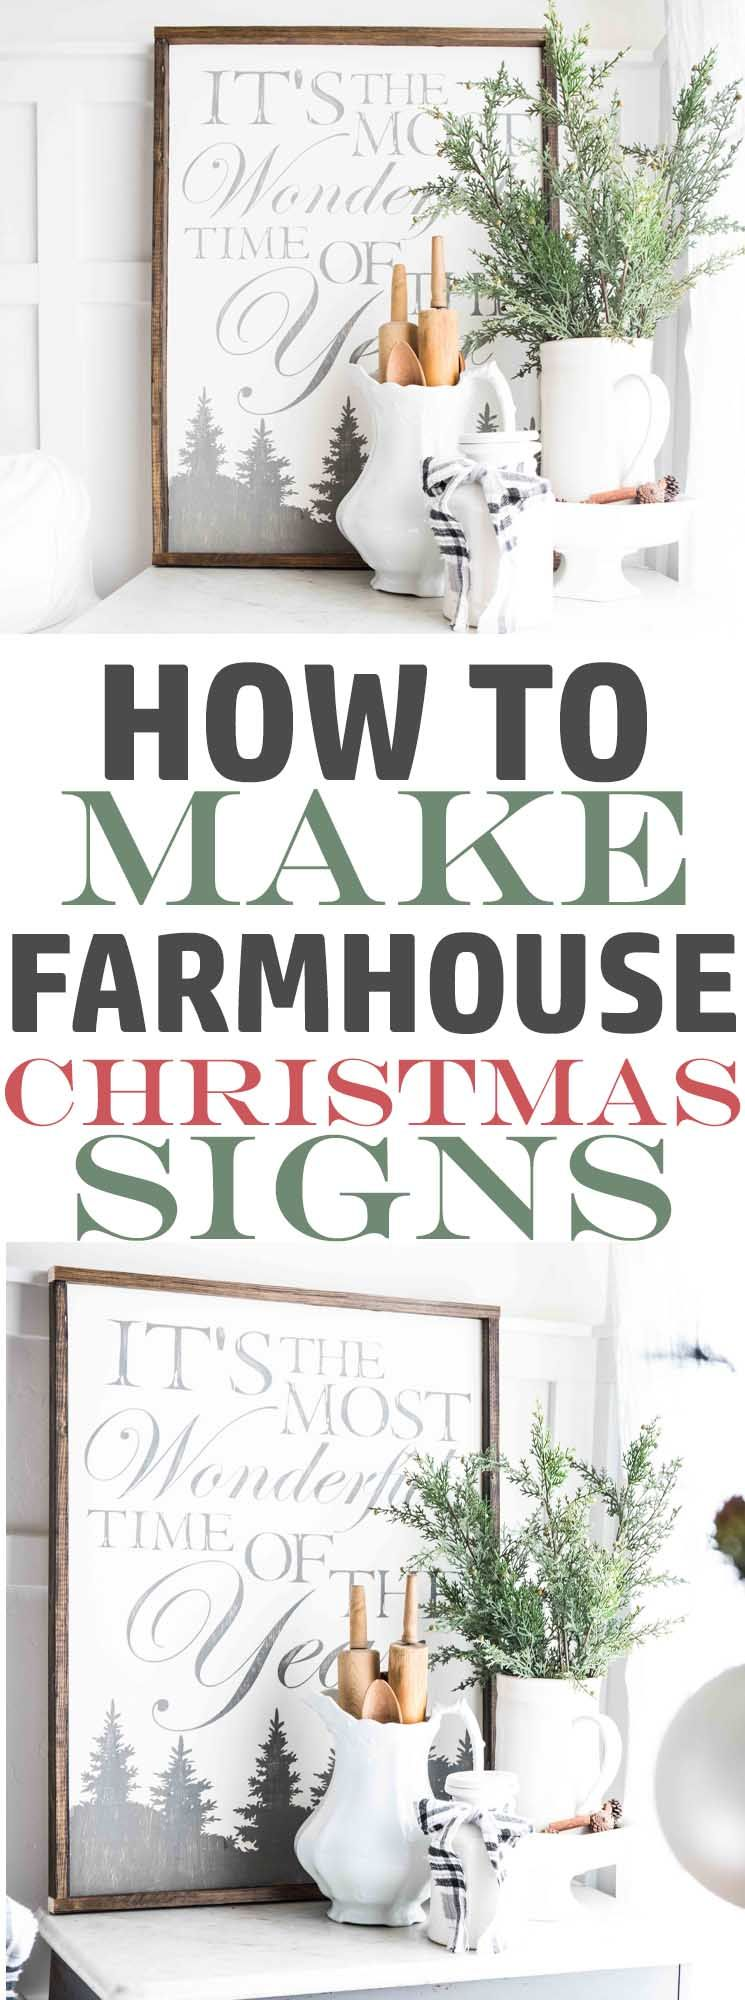 How to make a farmhouse christmas signitus the most wonderful time